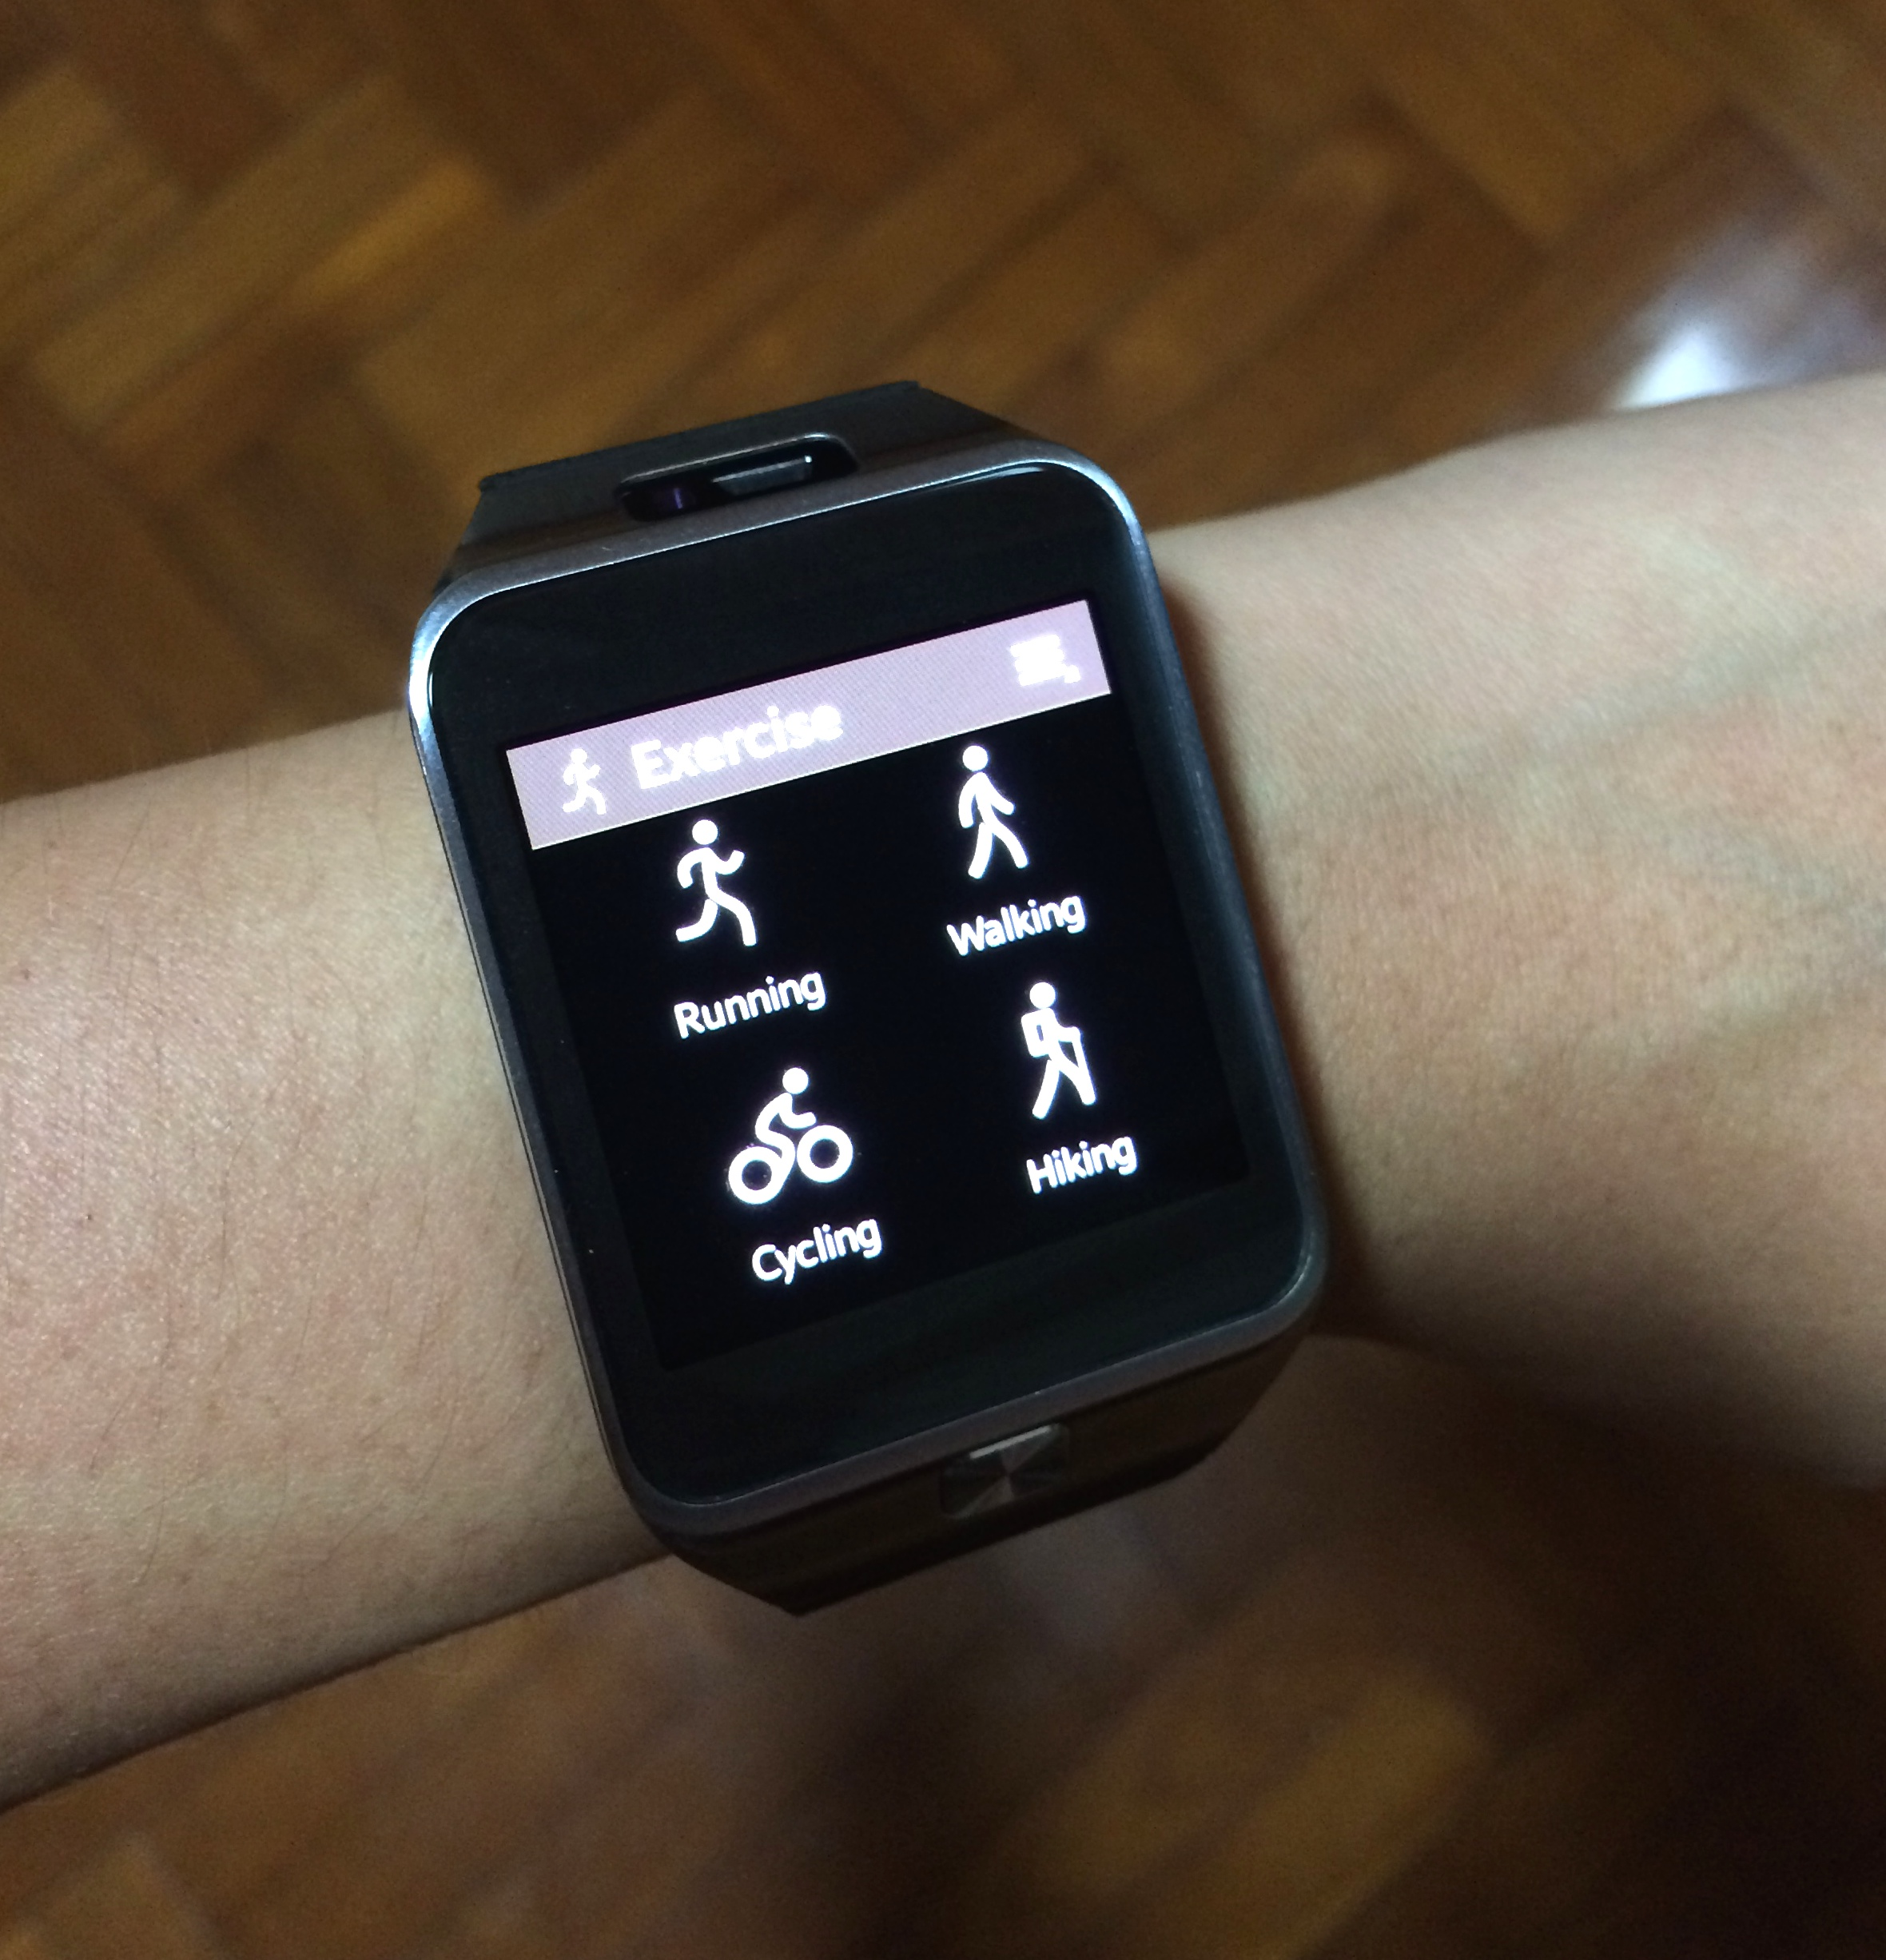 Samsung Gear 2, Gear 2 Neo and Gear Fit Review